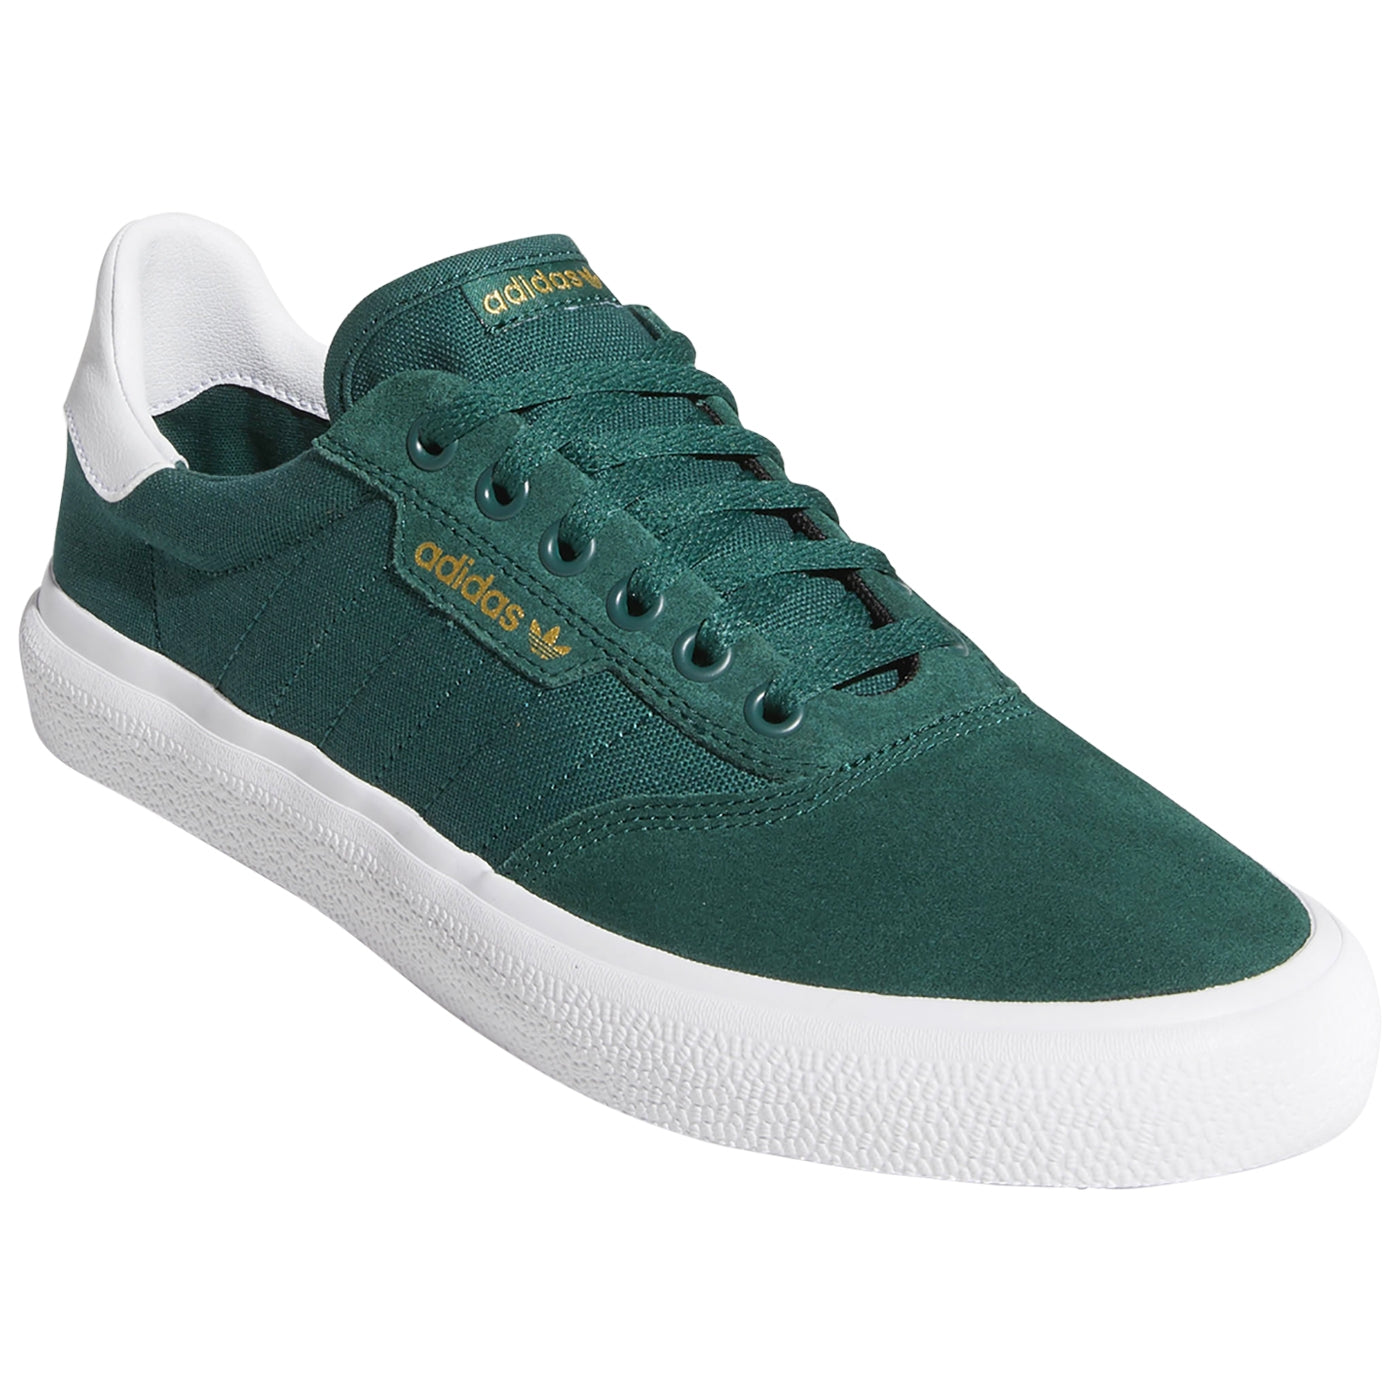 new product 18880 27833 Adidas 3MC Shoes - Collegiate Green  Footwear White  Collegiate Green.  Size Charts